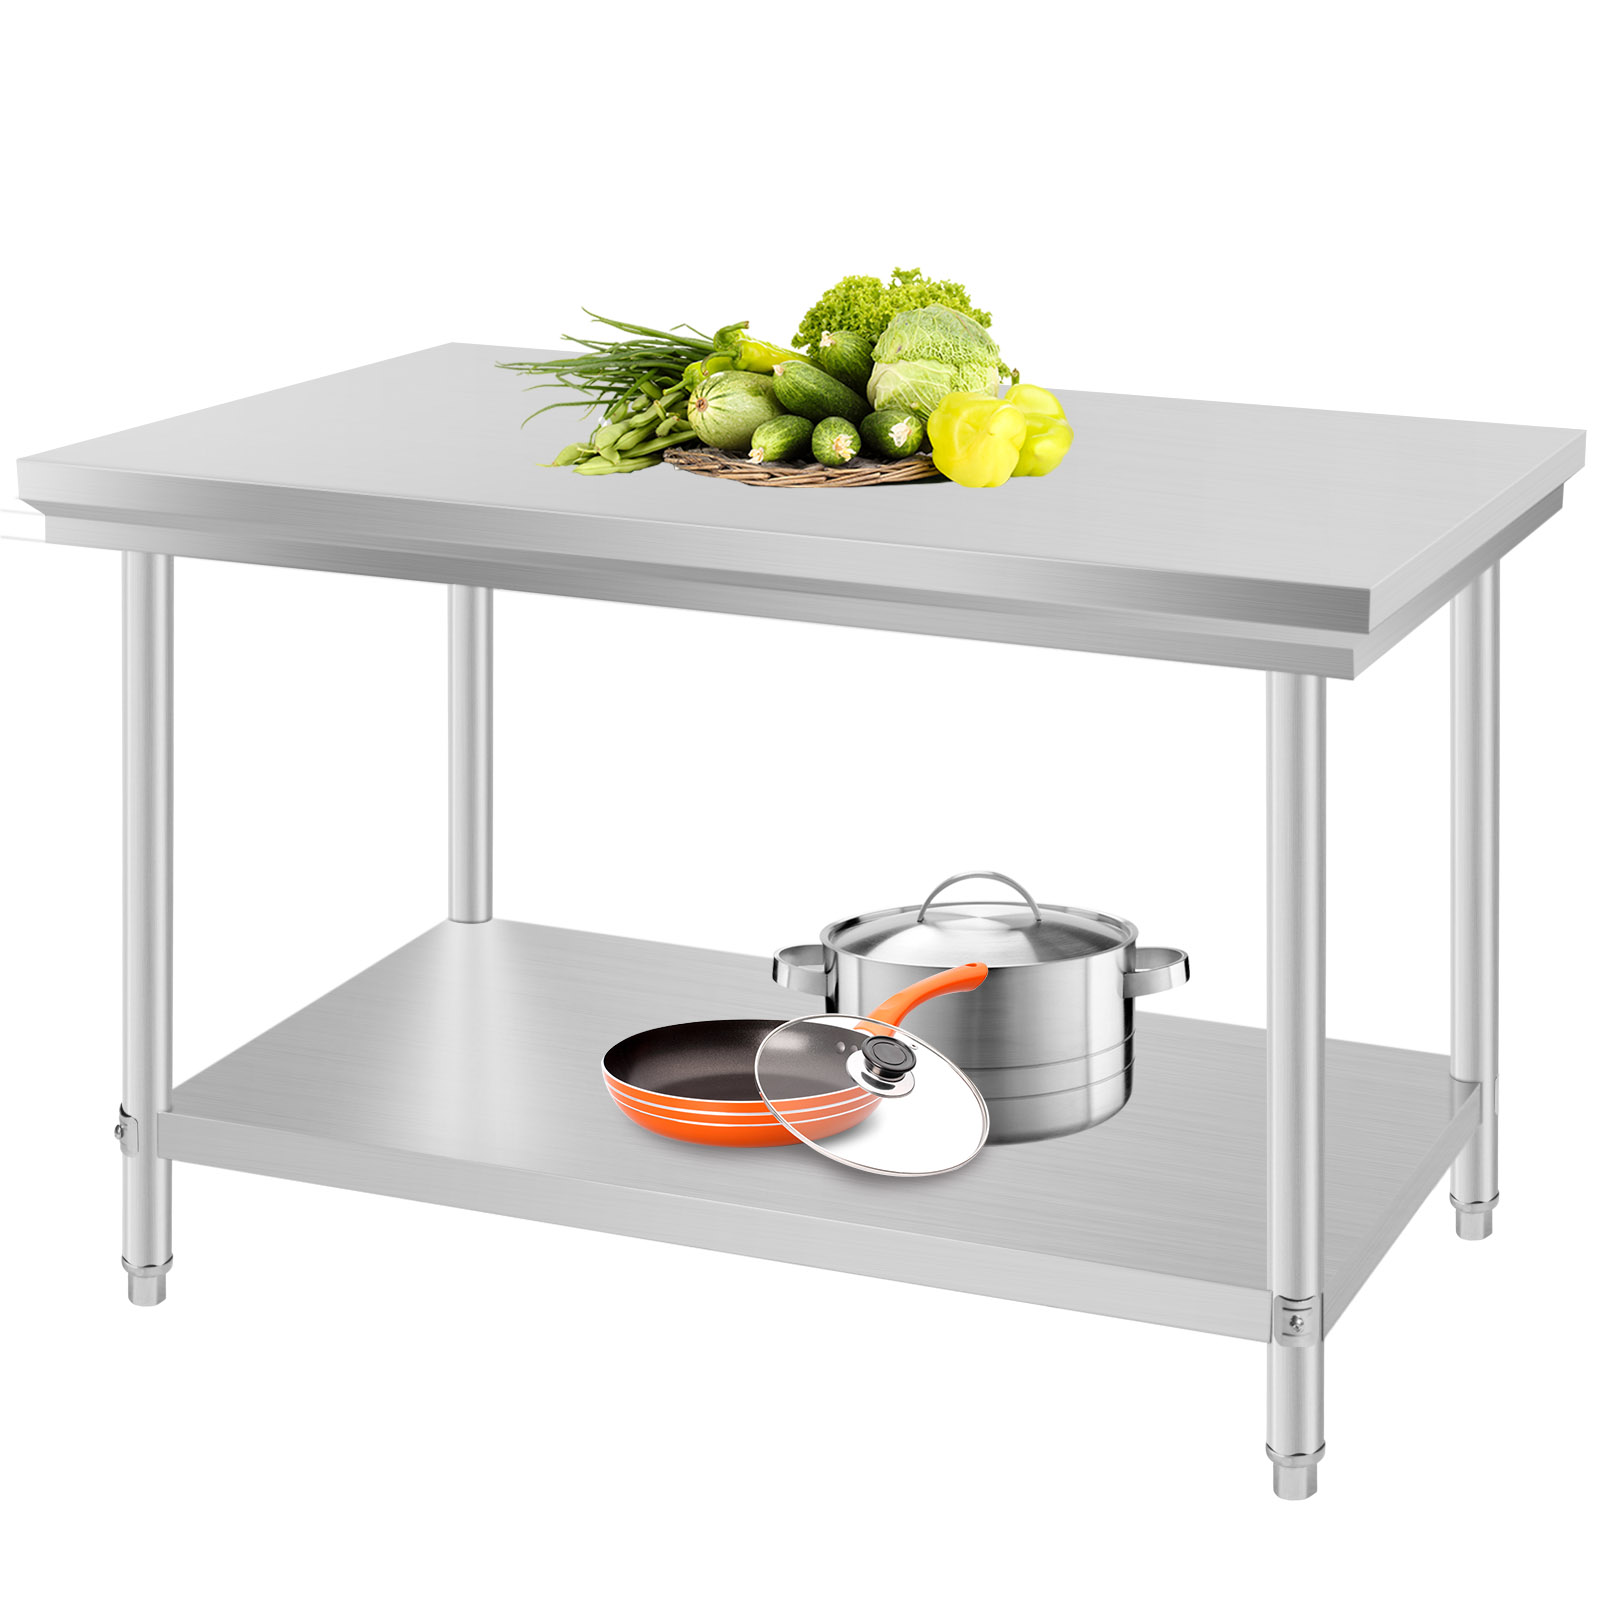 Industrial Commercial Stainless Steel Kitchen Food Prep Shelf Work Table Bench Ebay